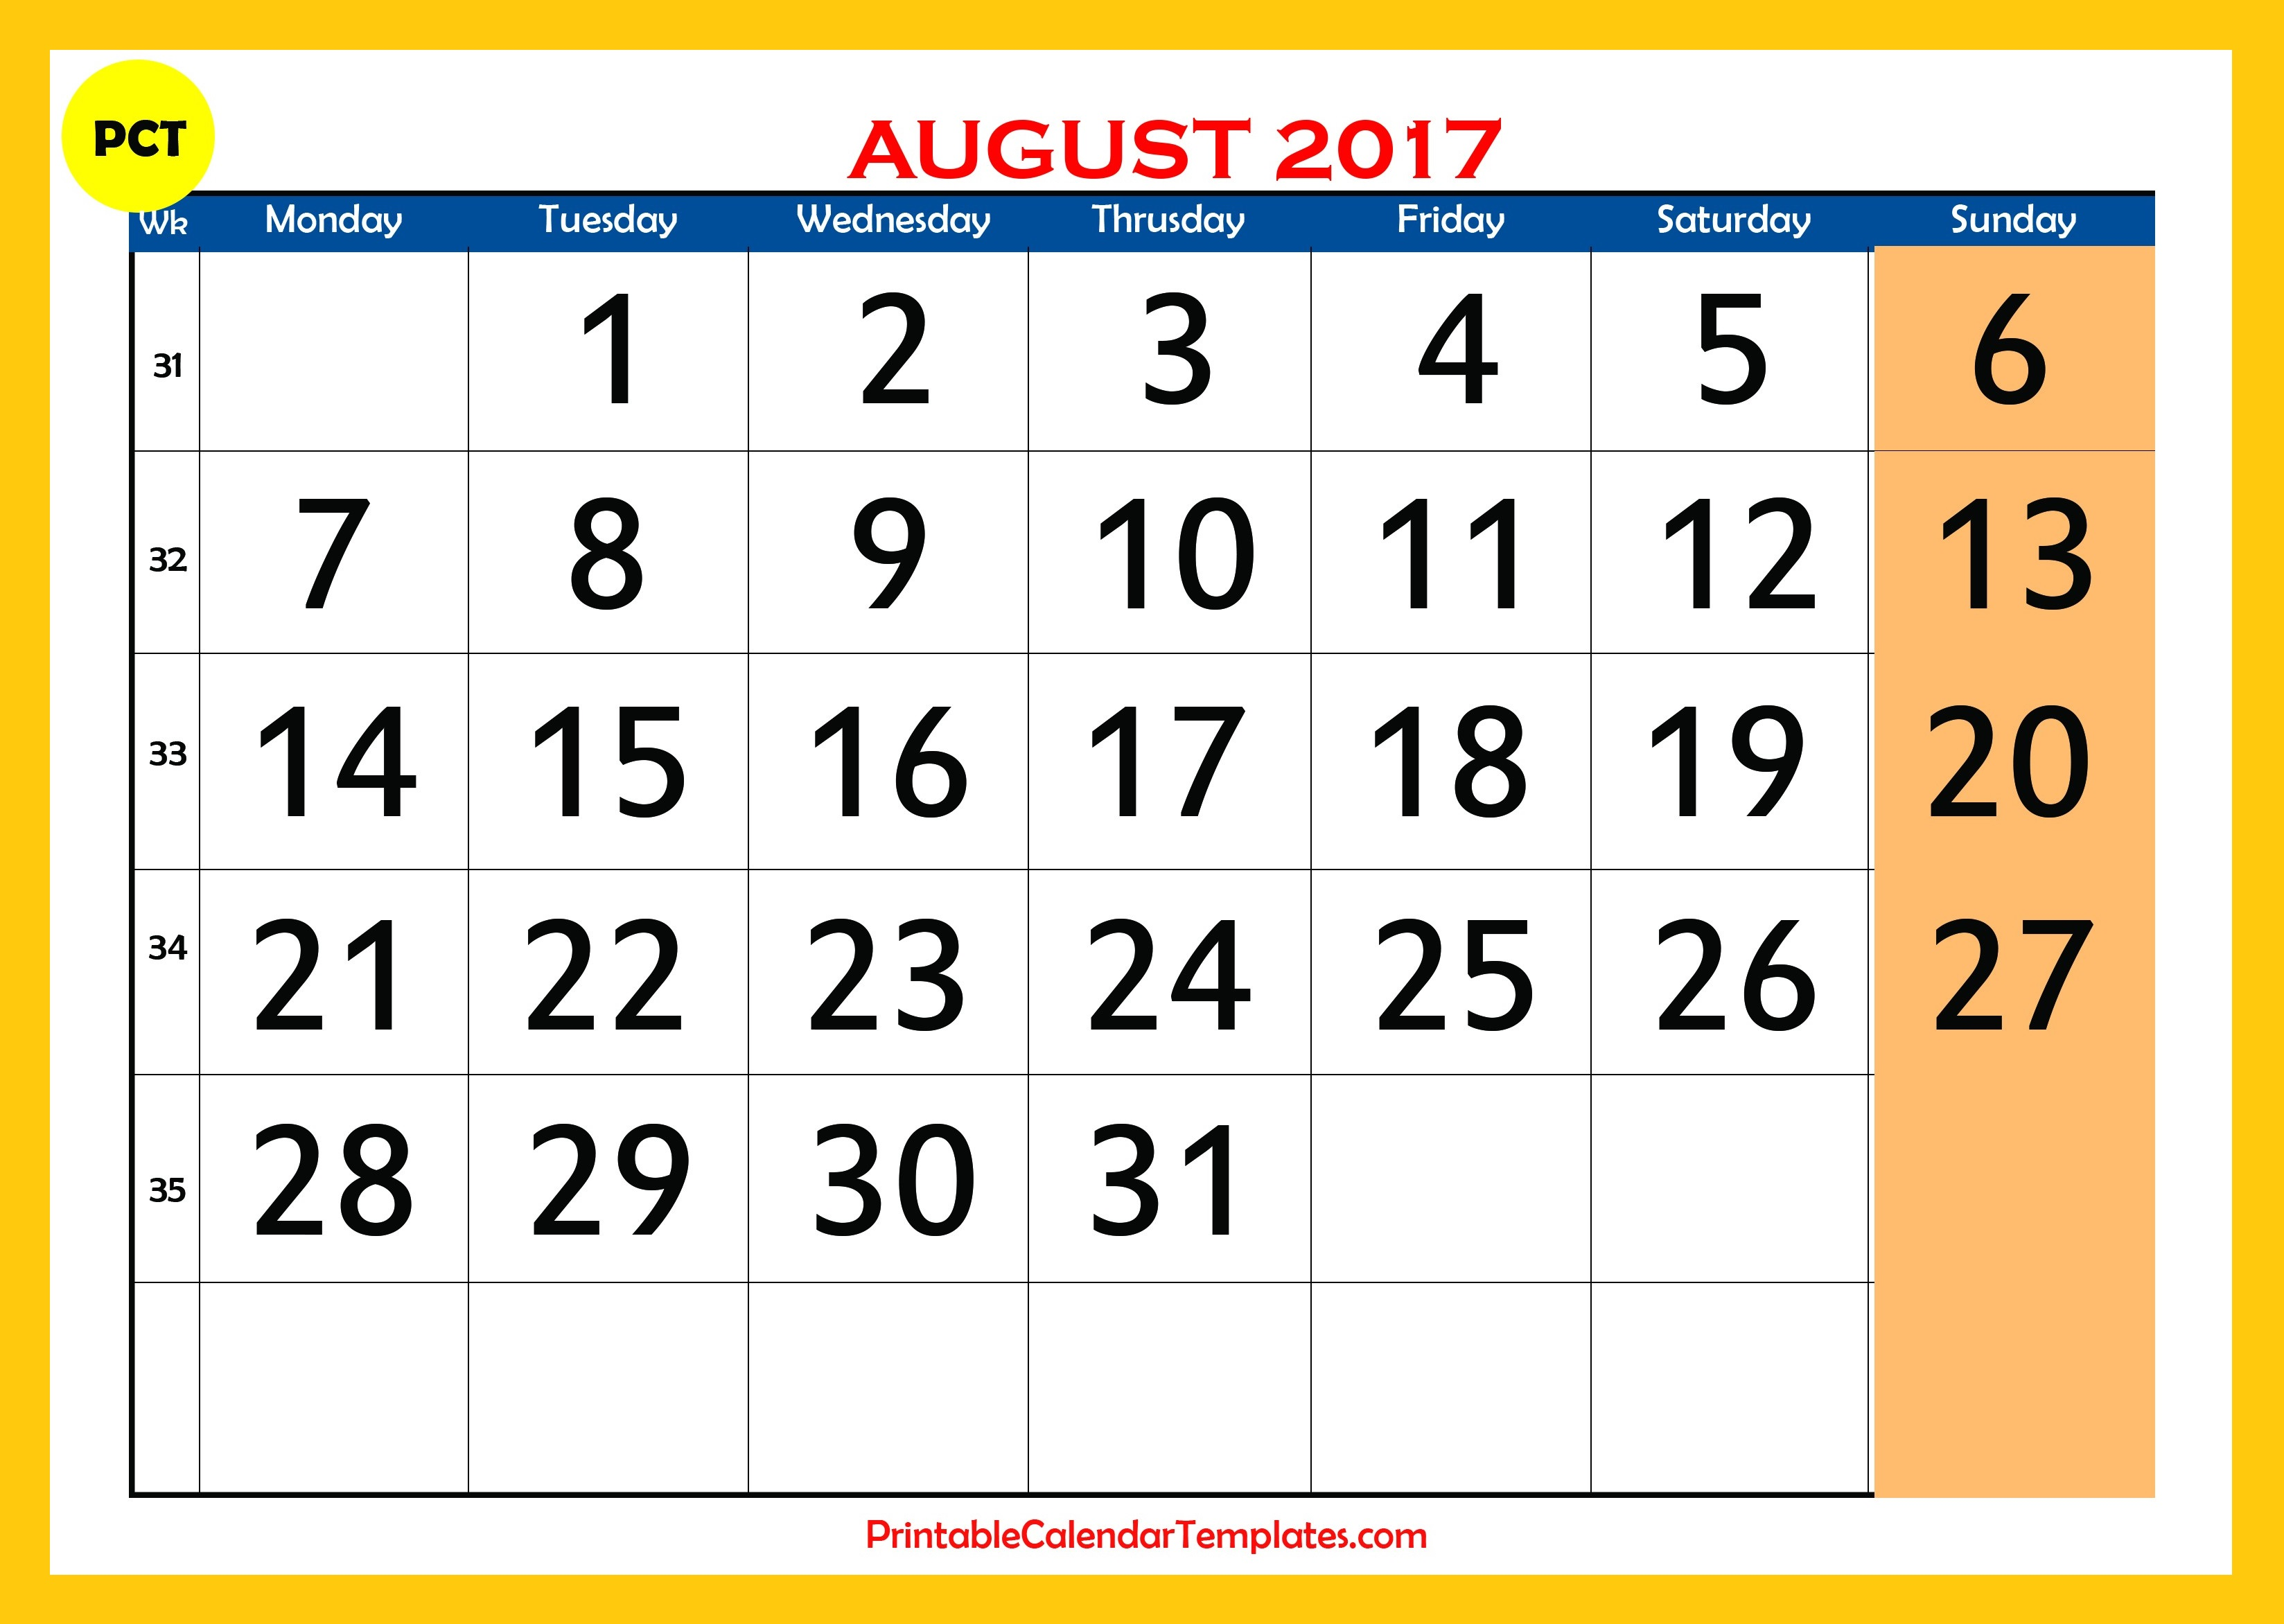 Calendar for October 2017 (Singapore) - Time and Date